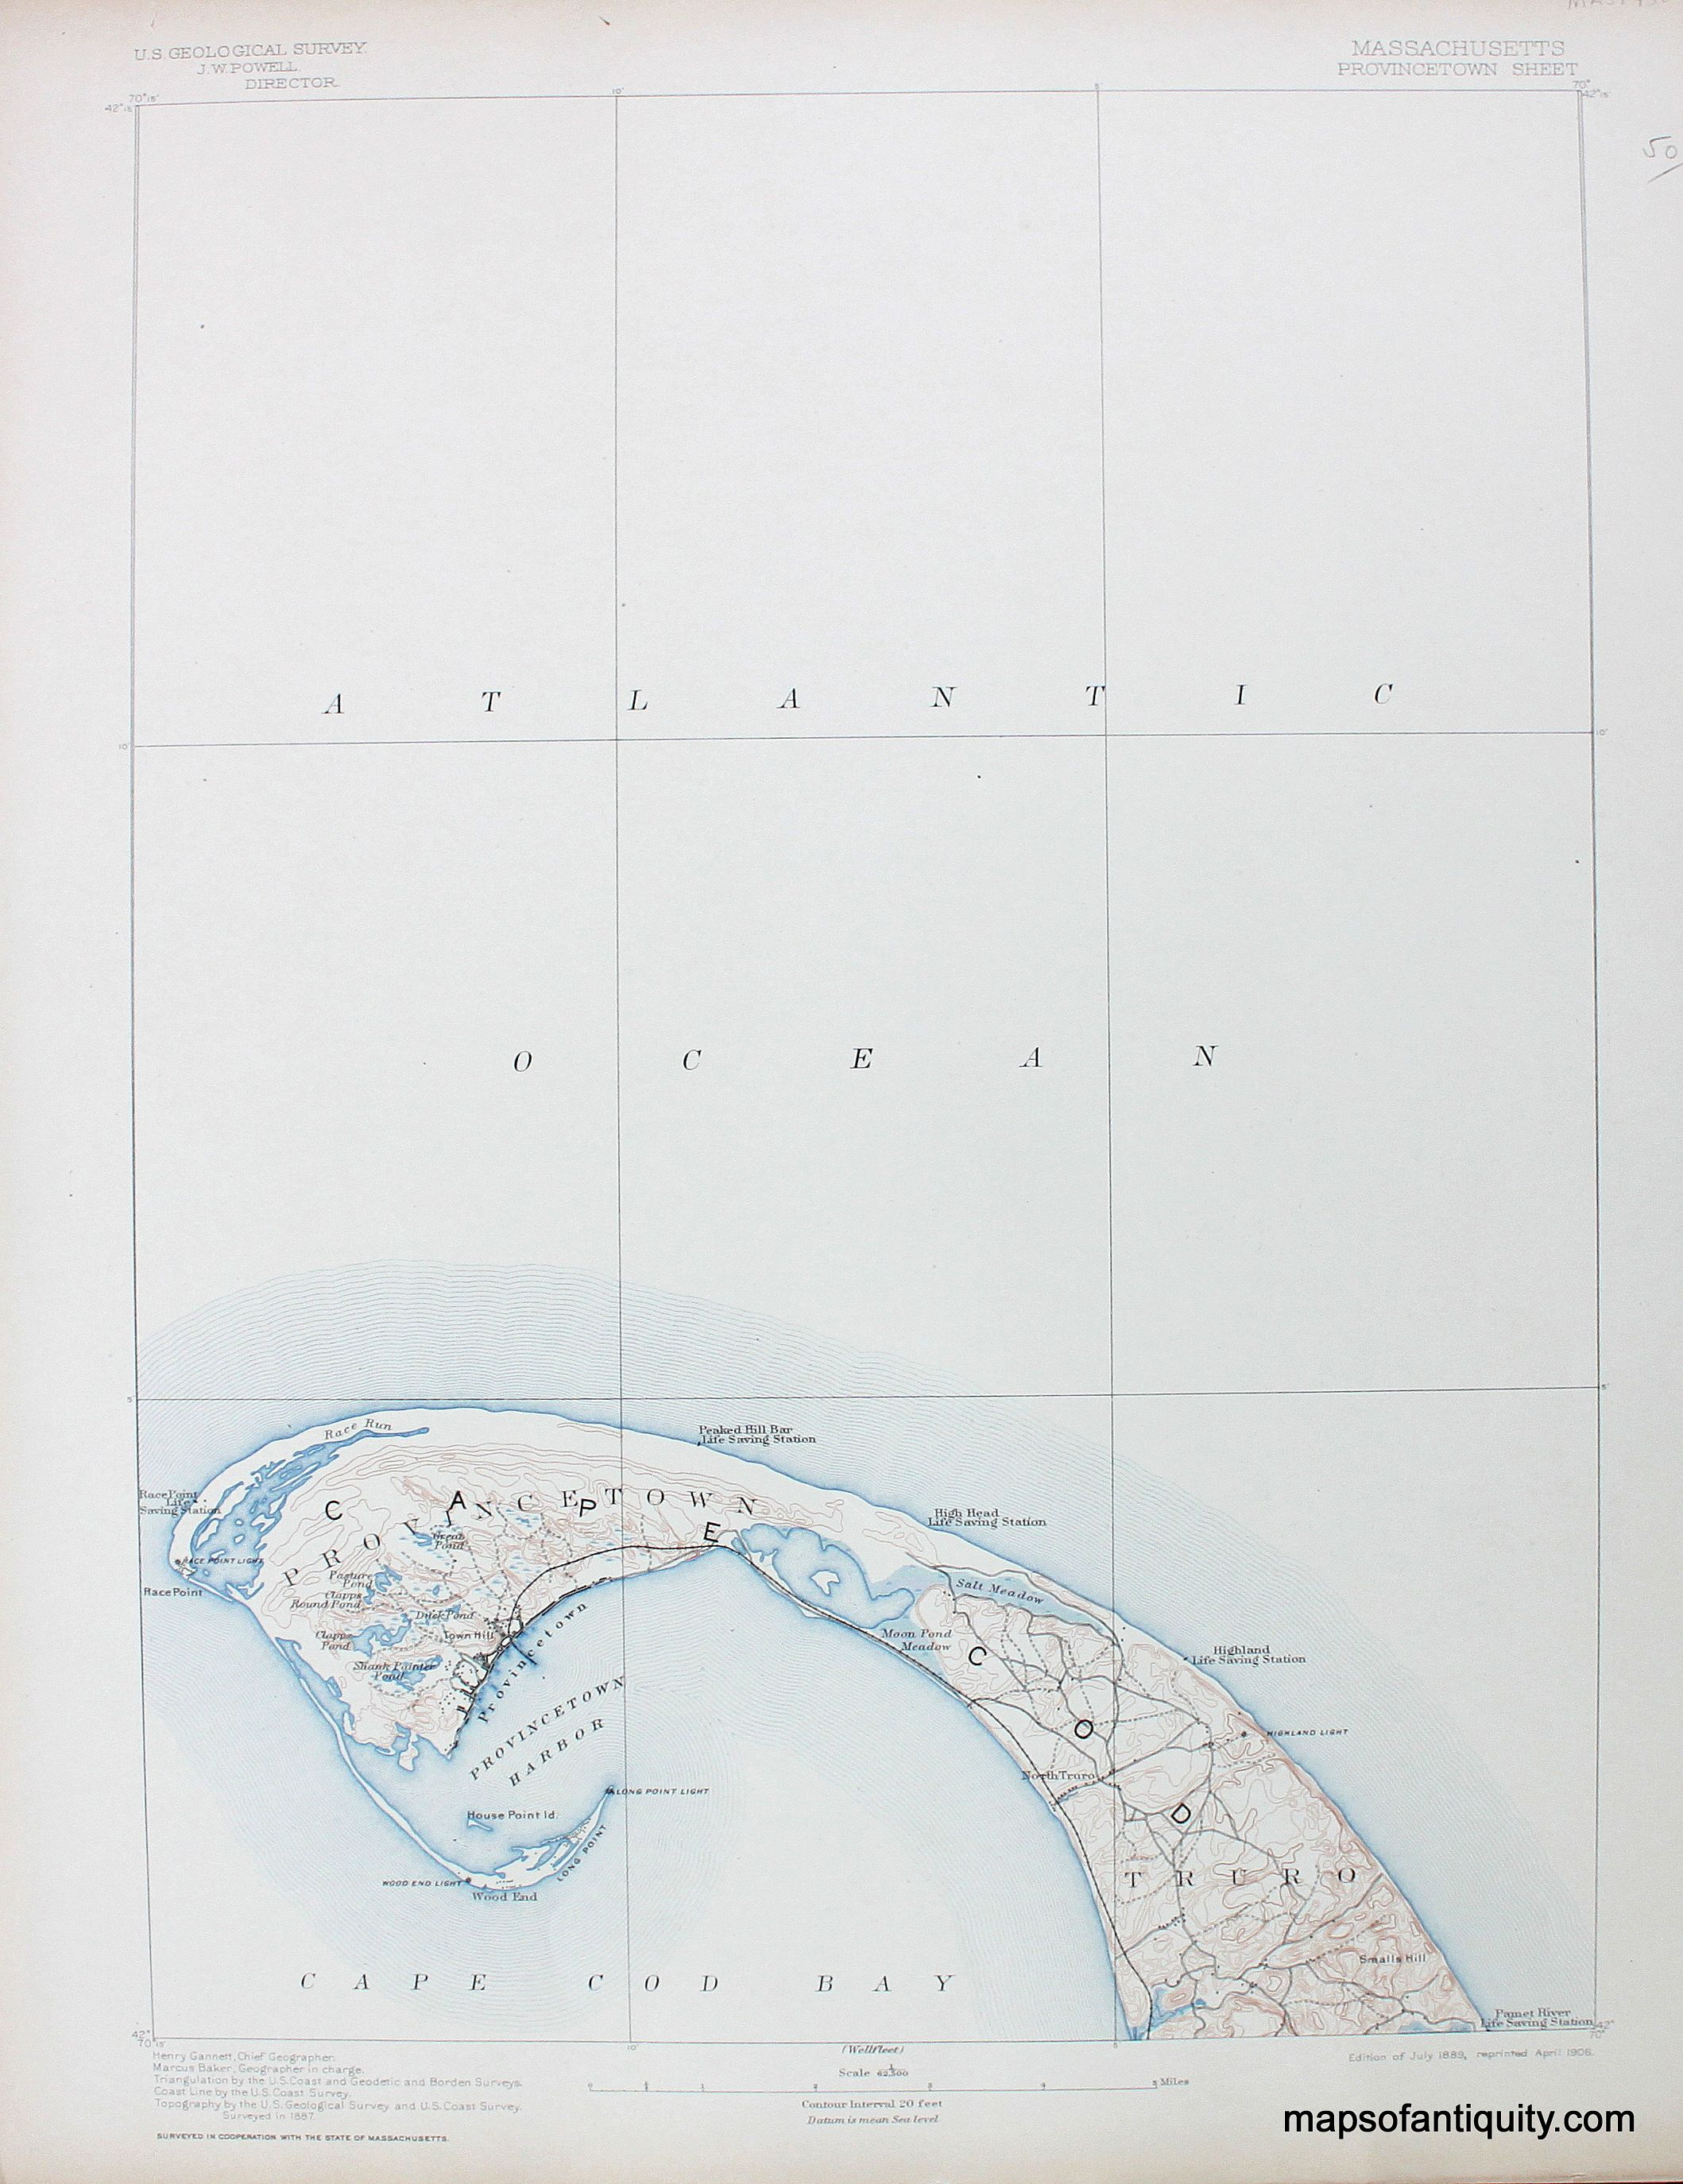 MA Provincetown sheet, antique topo map - Antique Maps and